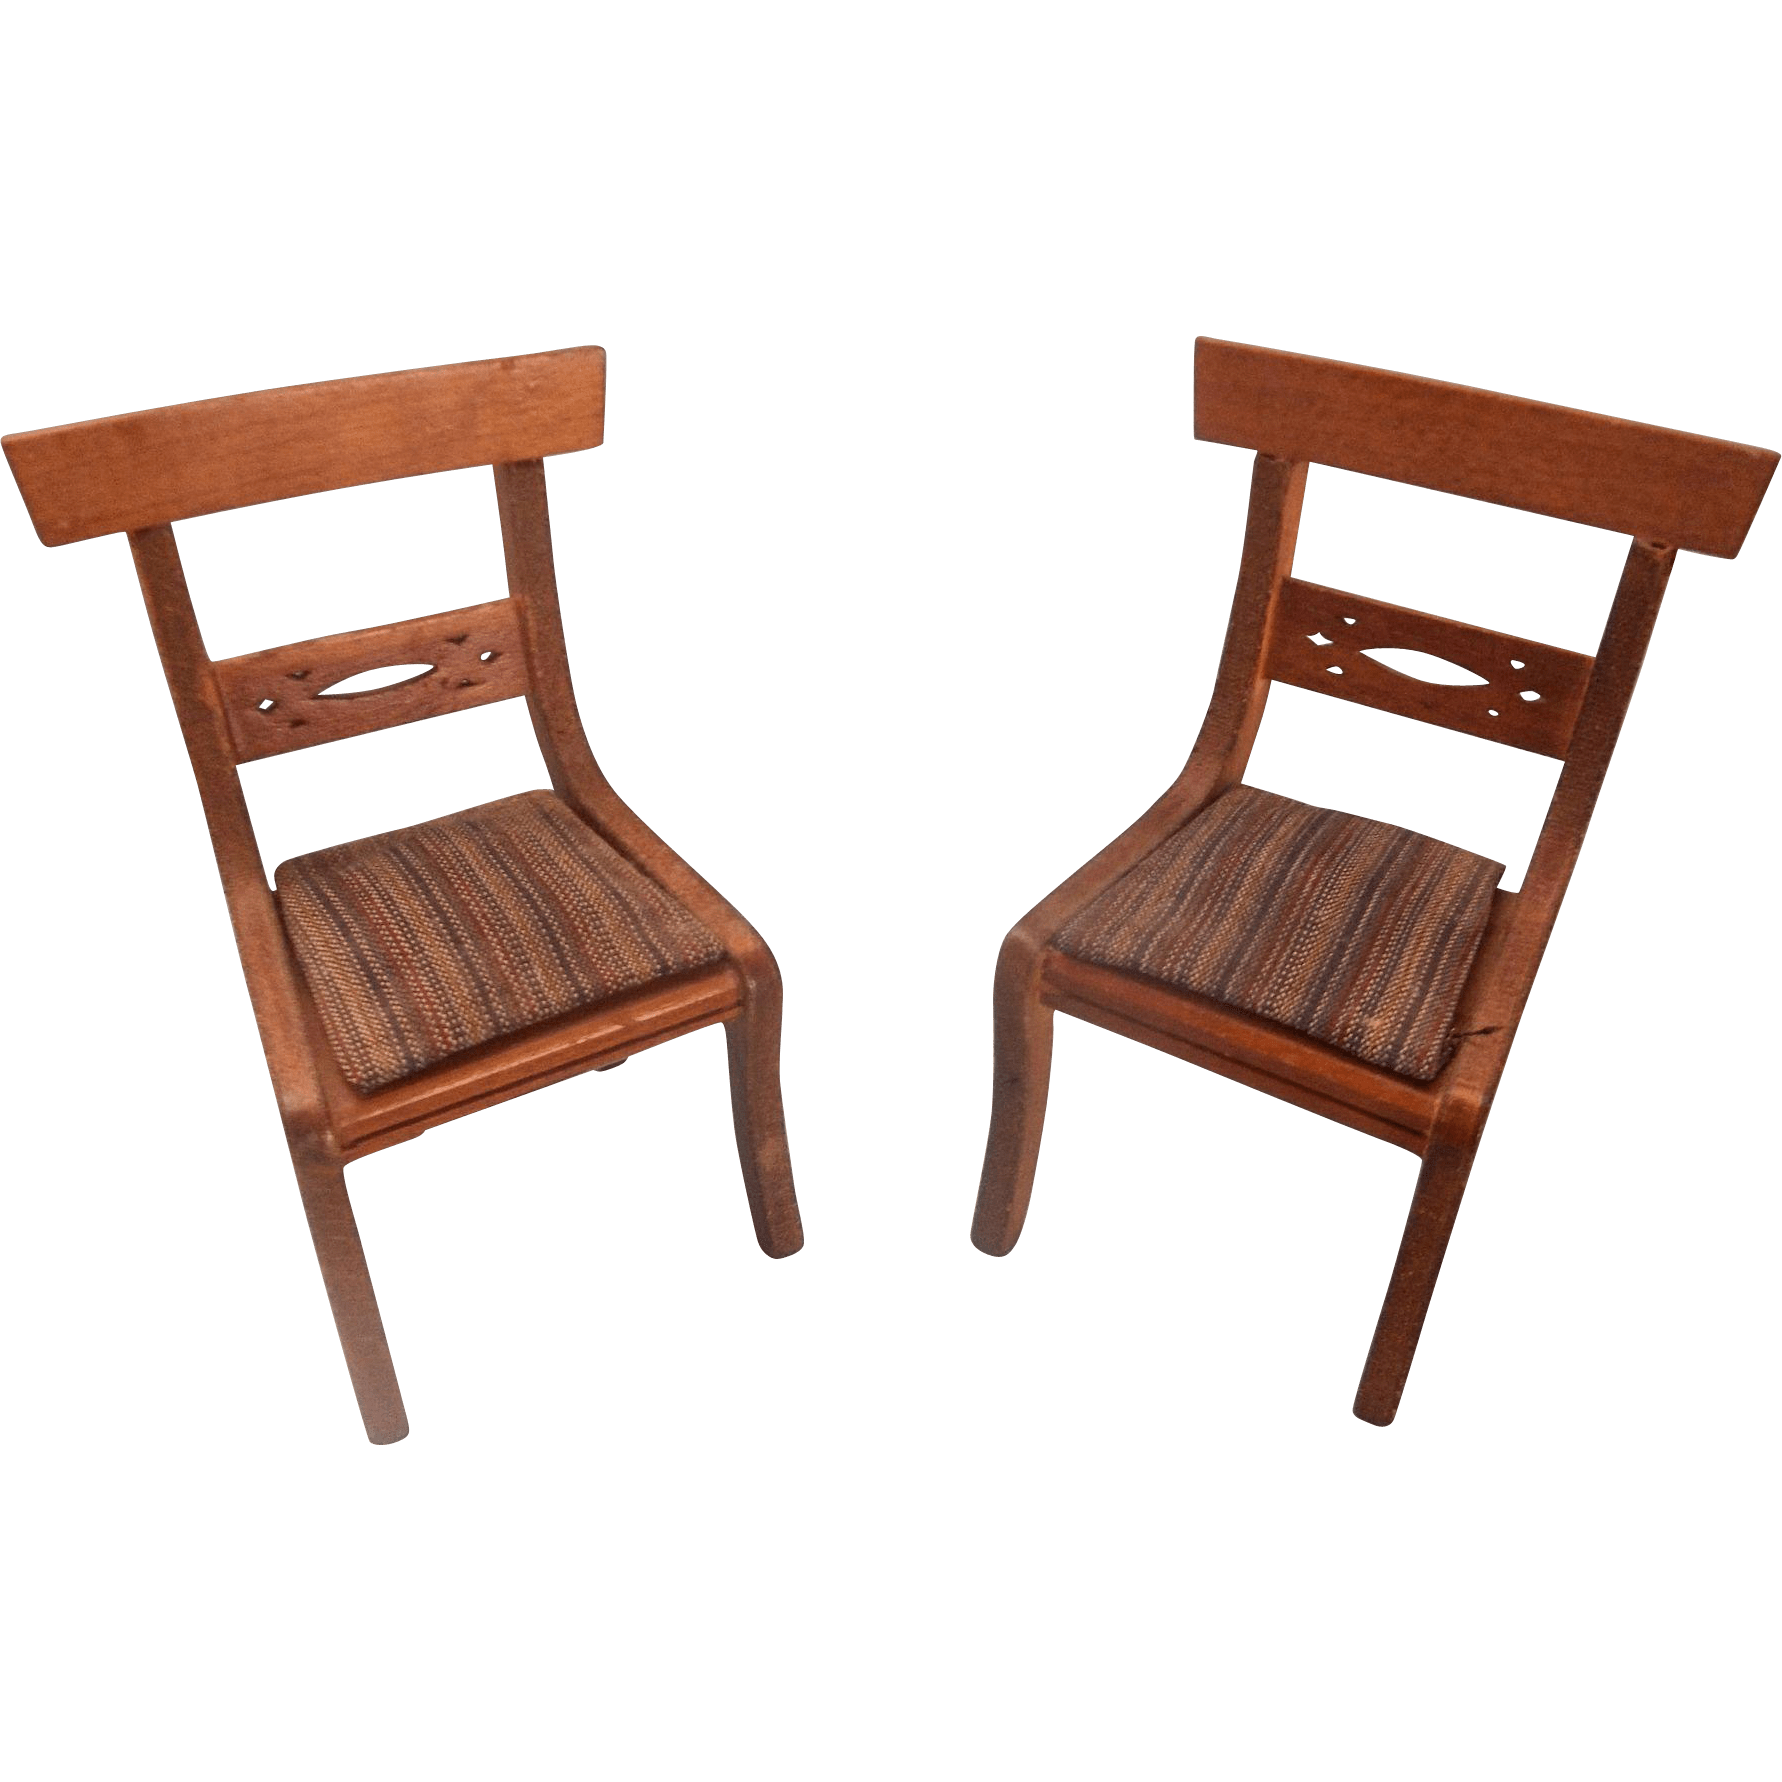 Miniature Chairs A Pair Of Miniature Dollhouse Upholstered Chairs From